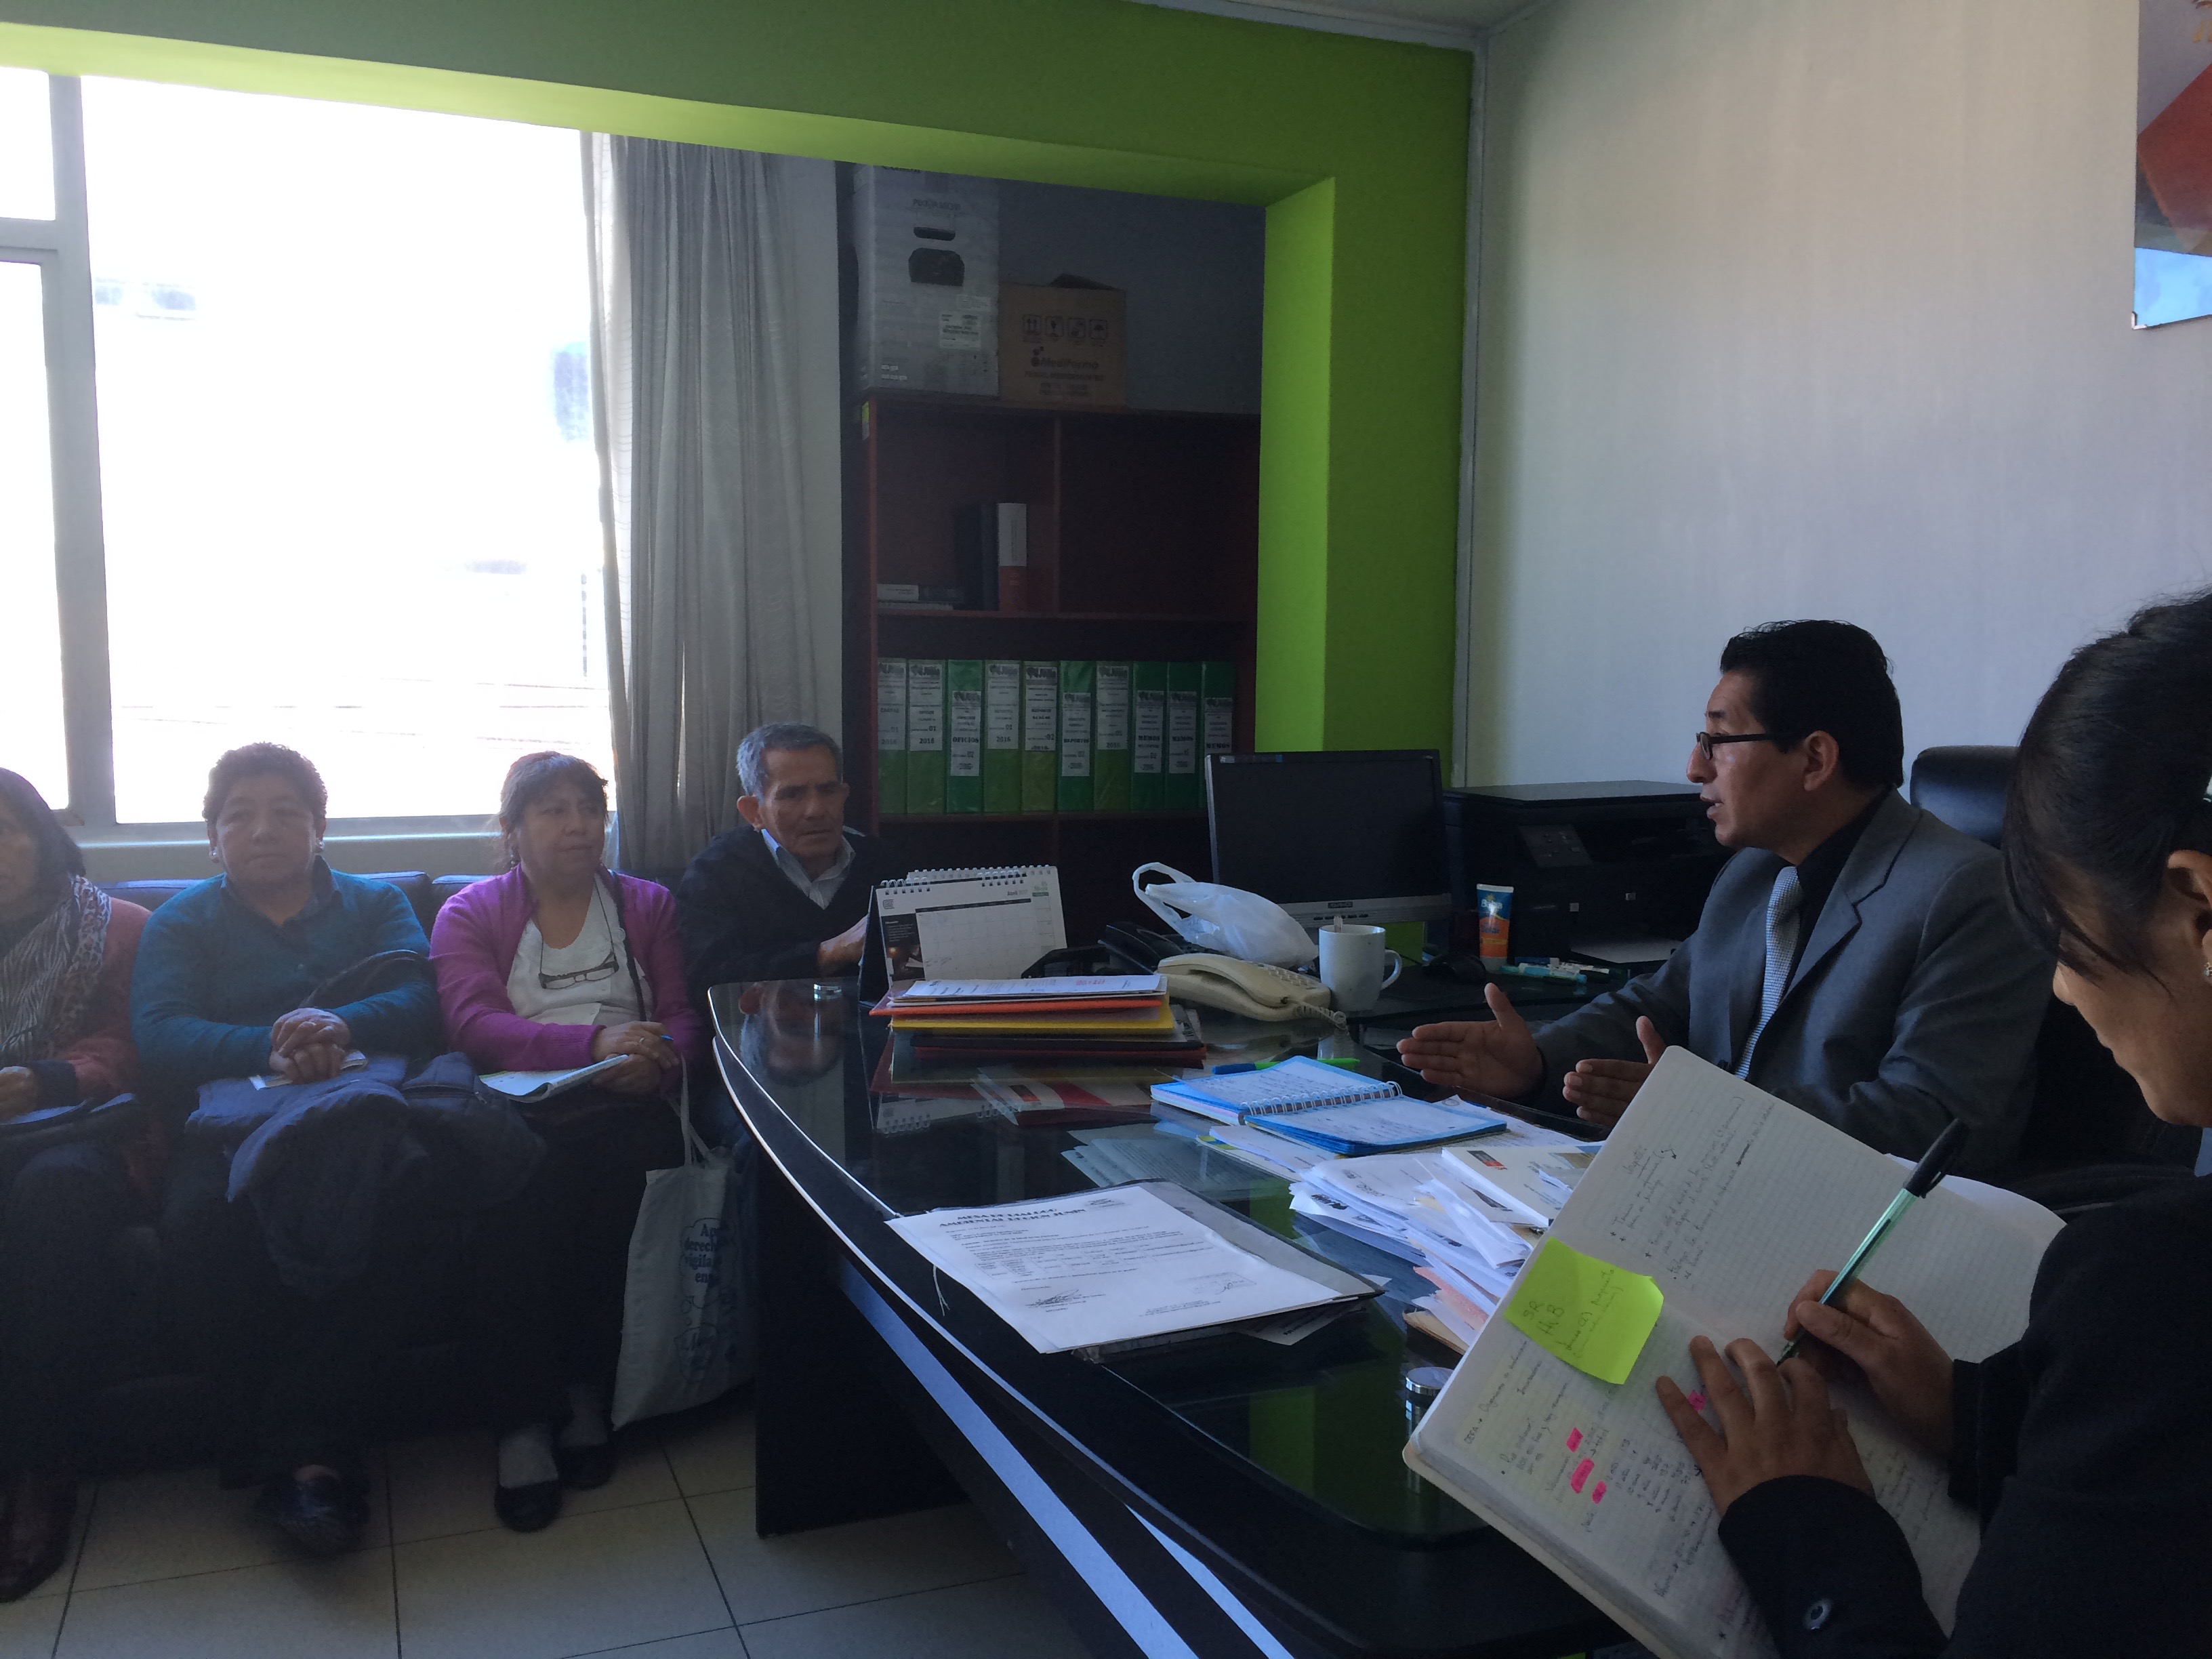 Conrado Olivera (director of Joining Hands network in Peru) and allies engage in conversation with the regional health director for La Oroya. (photo by Jed Koball)